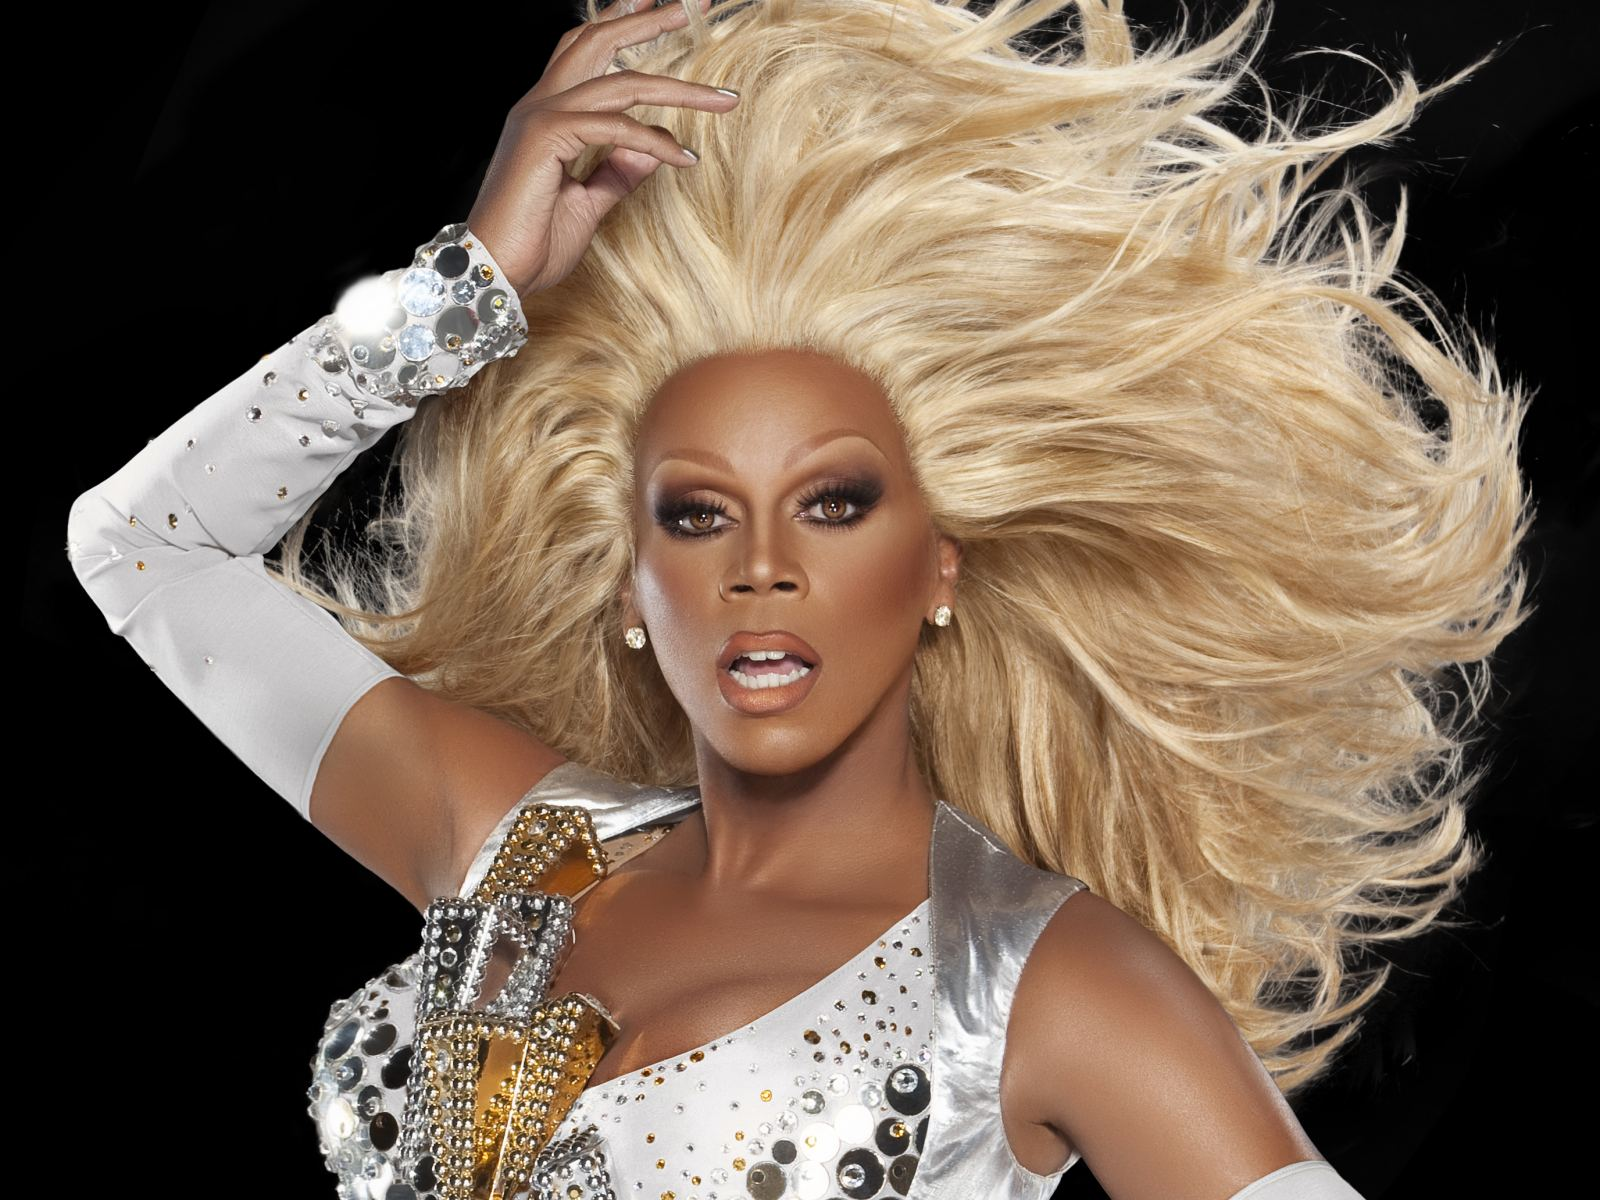 Main image for event titled RuPaul's DragCon